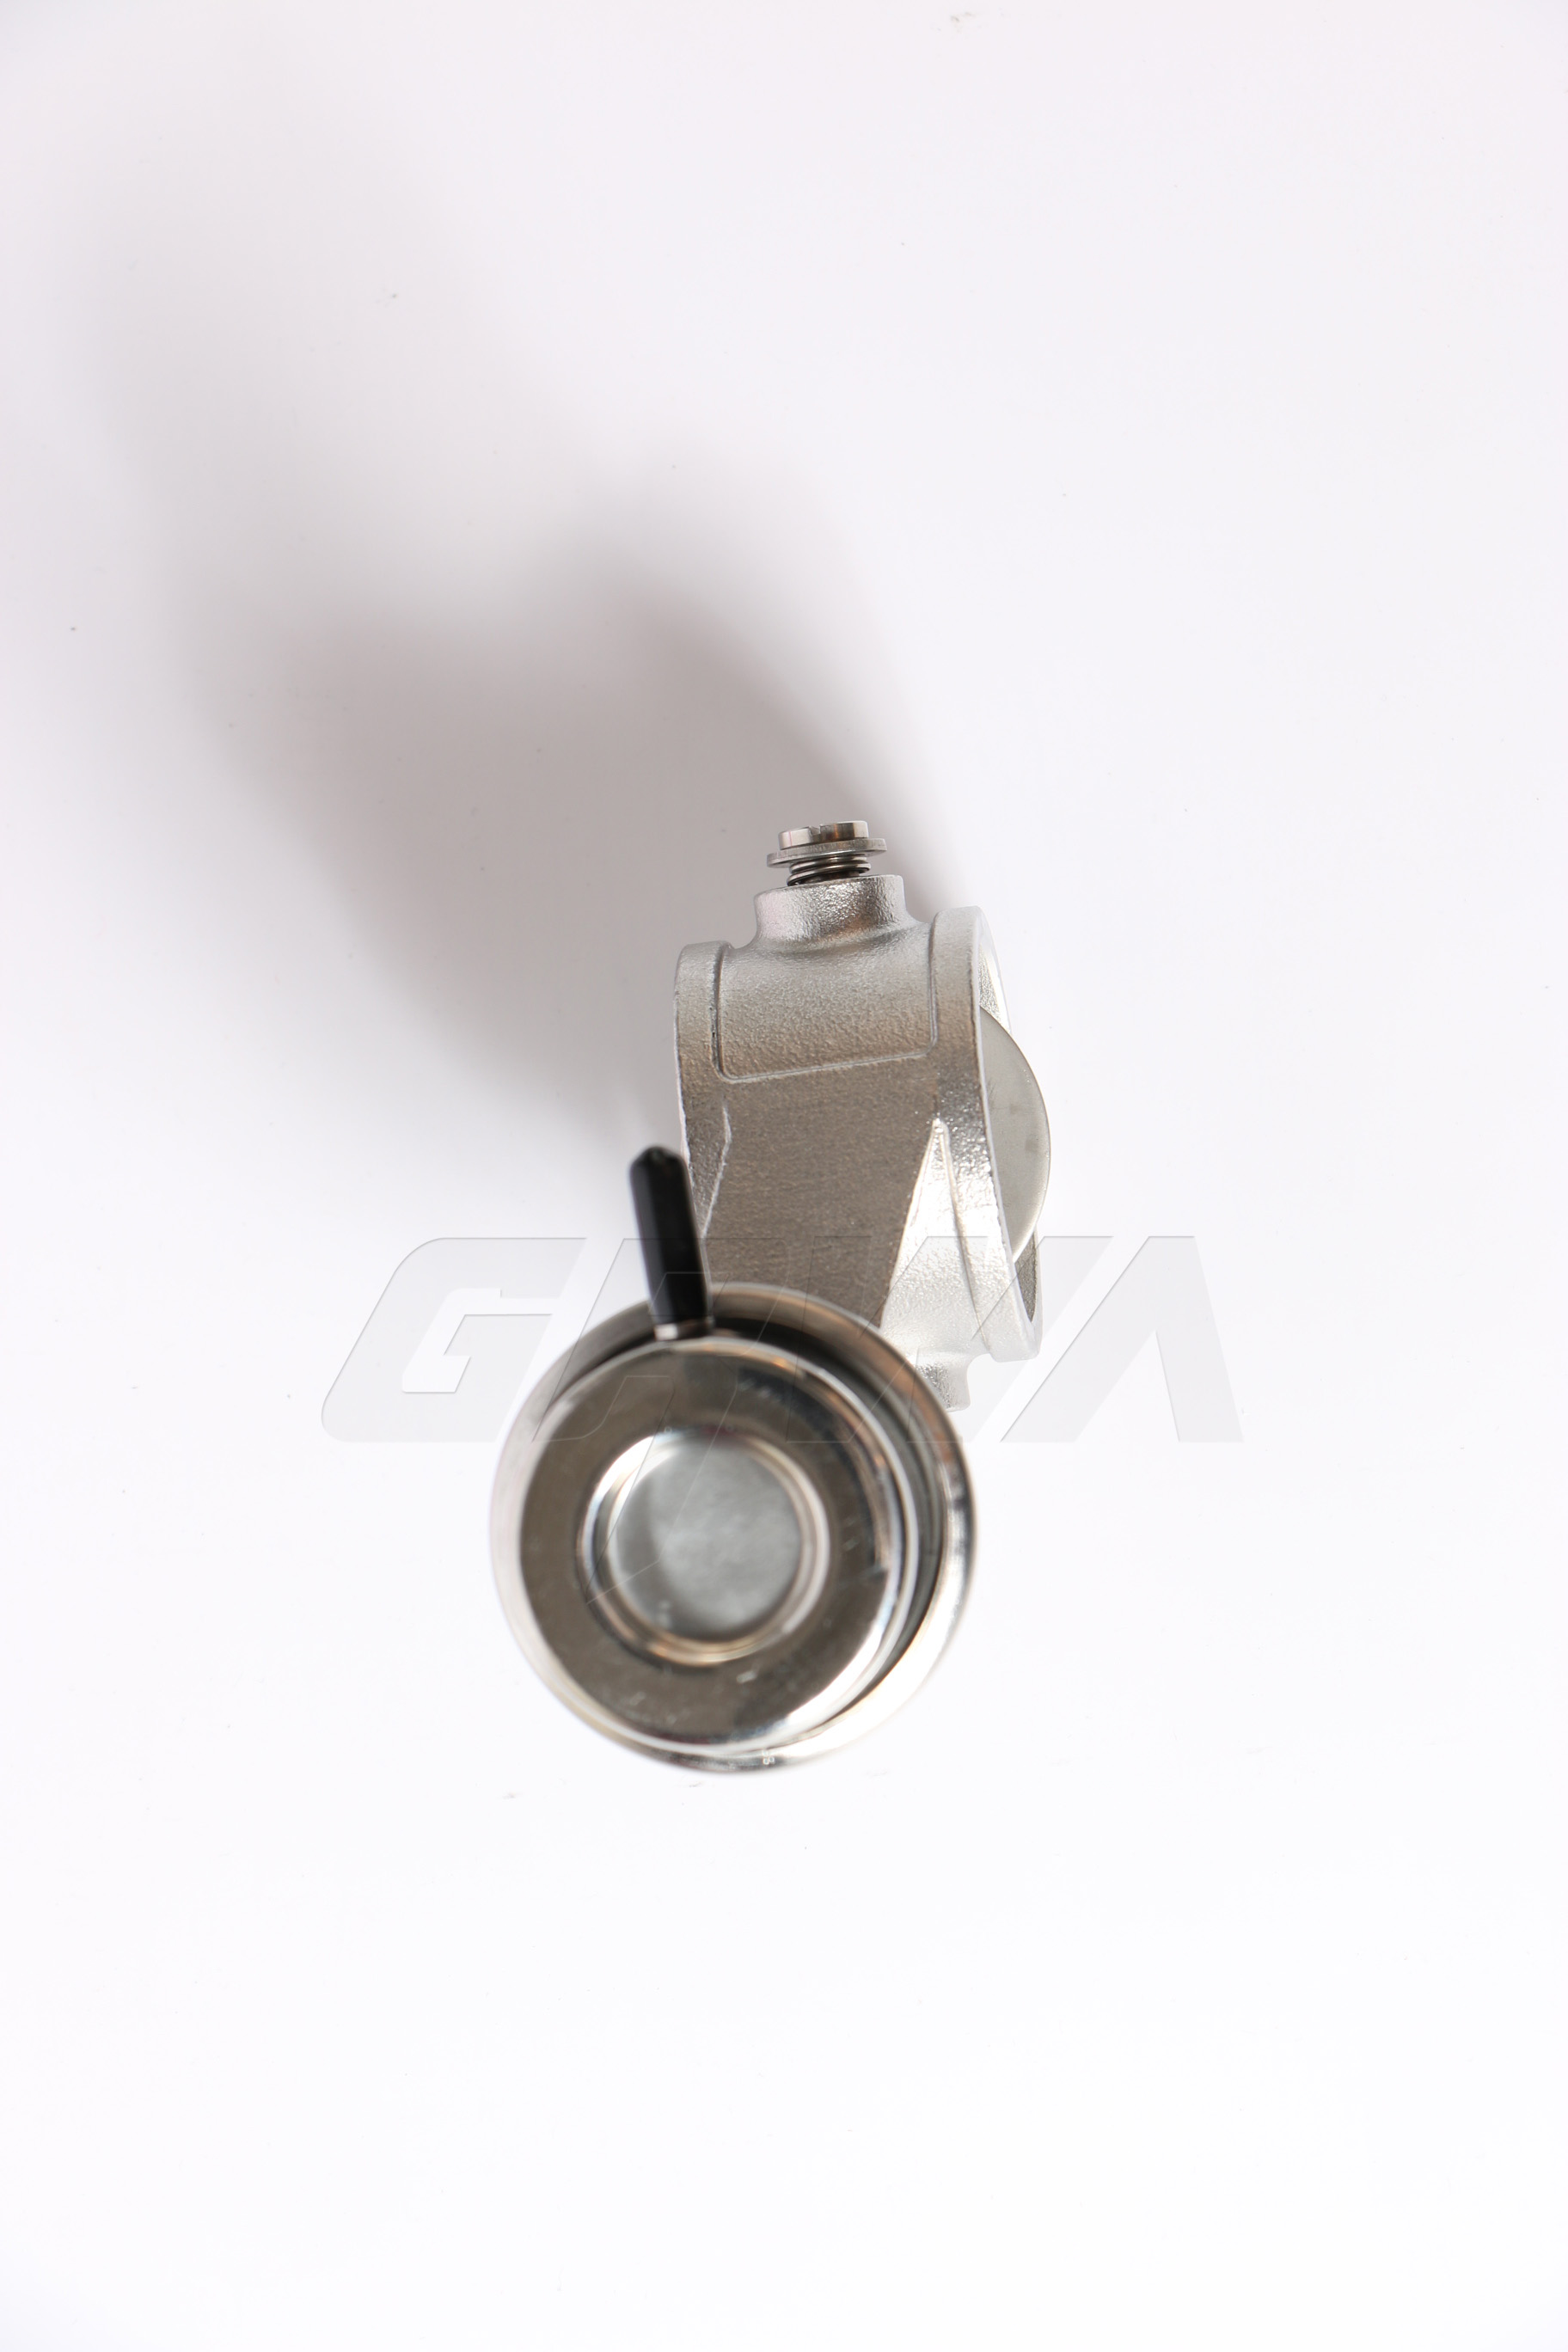 Normally Open Vacuum Pneumatic Exhaust Valve Cutout